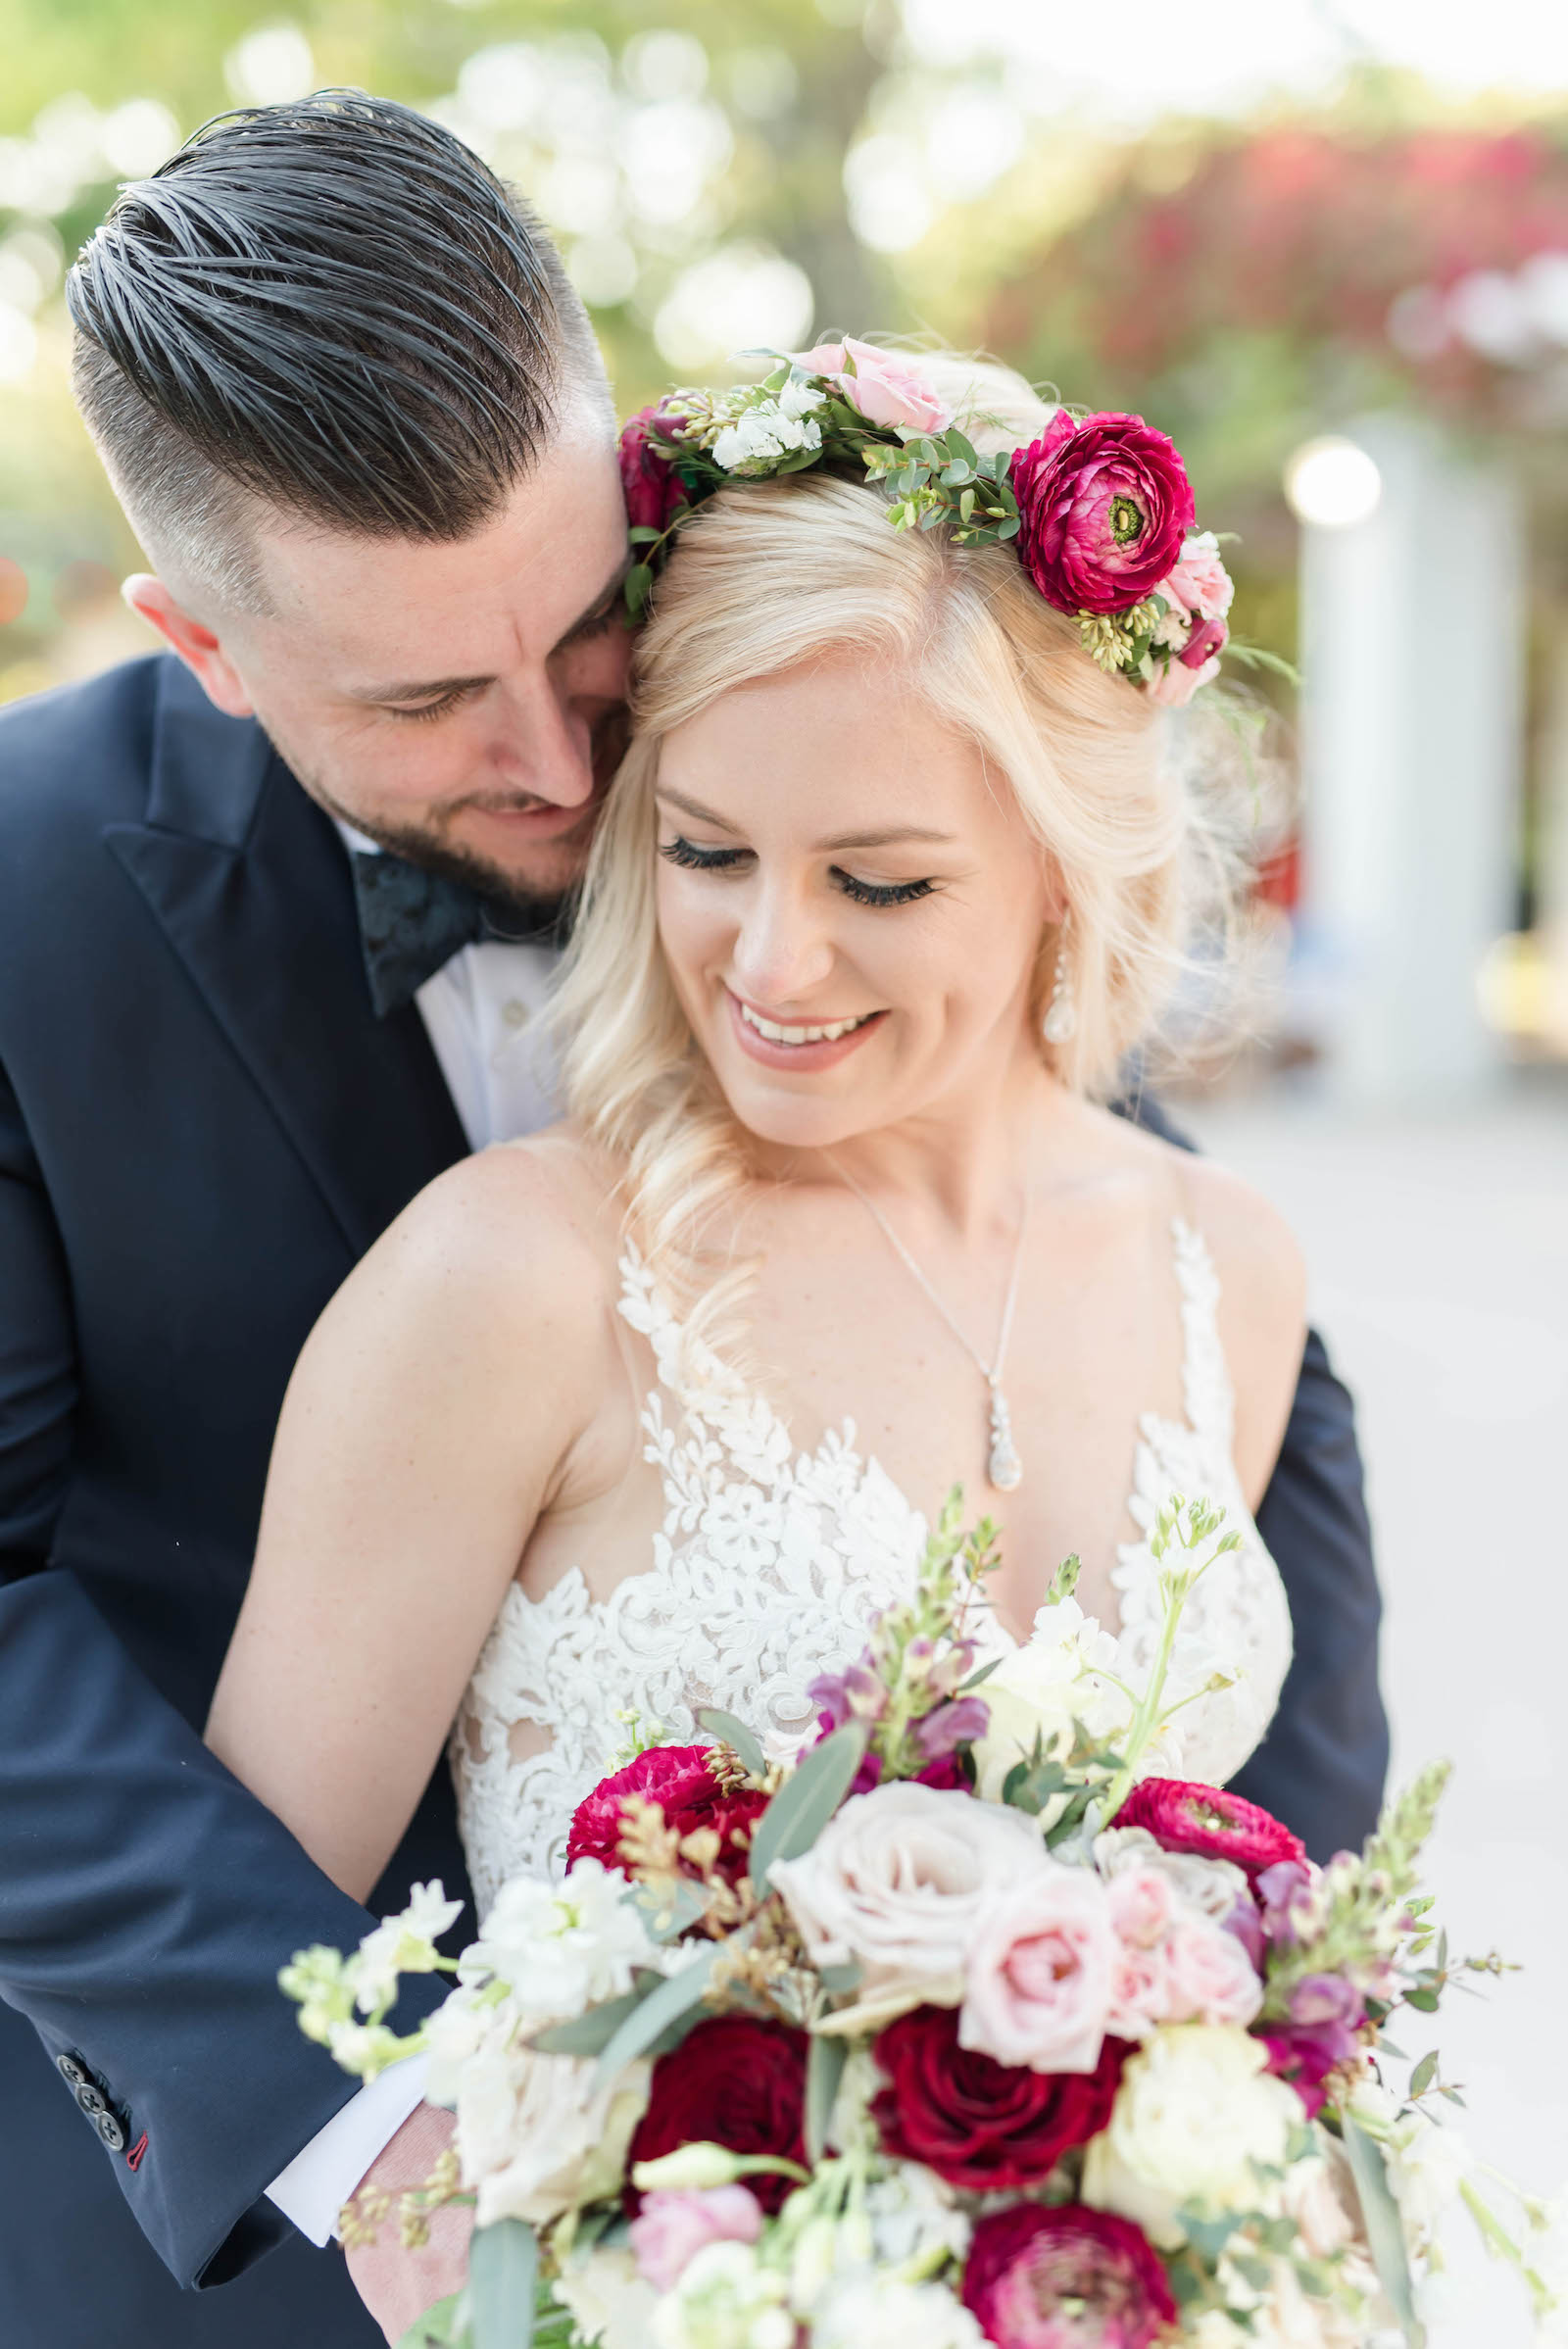 Bridal and Groom Portrait   Stella York Lace Sheath Spaghetti Strap Empire Waist Wedding Dress Bridal Gown   Bride Wedding Bouquet and Halo Crown with Blush Pink Dusty and Burgundy Rose Garden Roses, Snapdragons, Stock, and Eucalyptus Greenery   Groom Classic Black Suit Tux